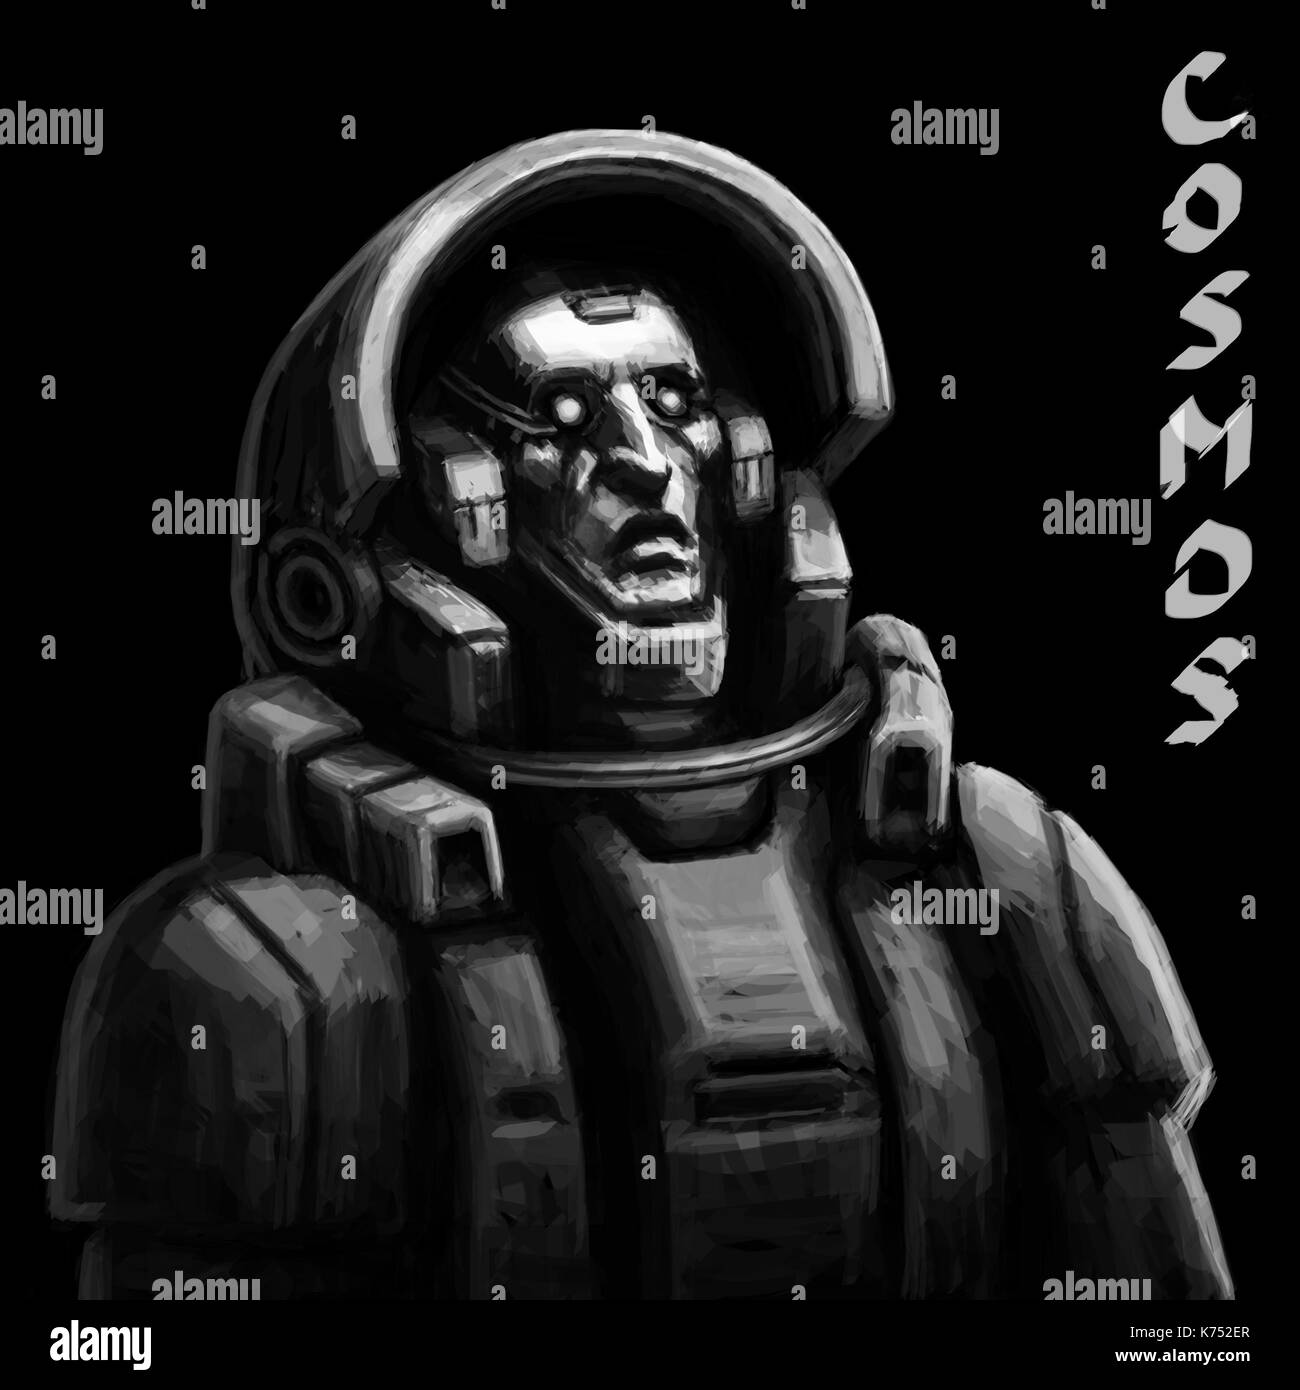 Astronaut sketch on black background. Cool science fiction spaceman cover. Serious character in space suit. Day of astronautics. Freehand digital draw - Stock Image